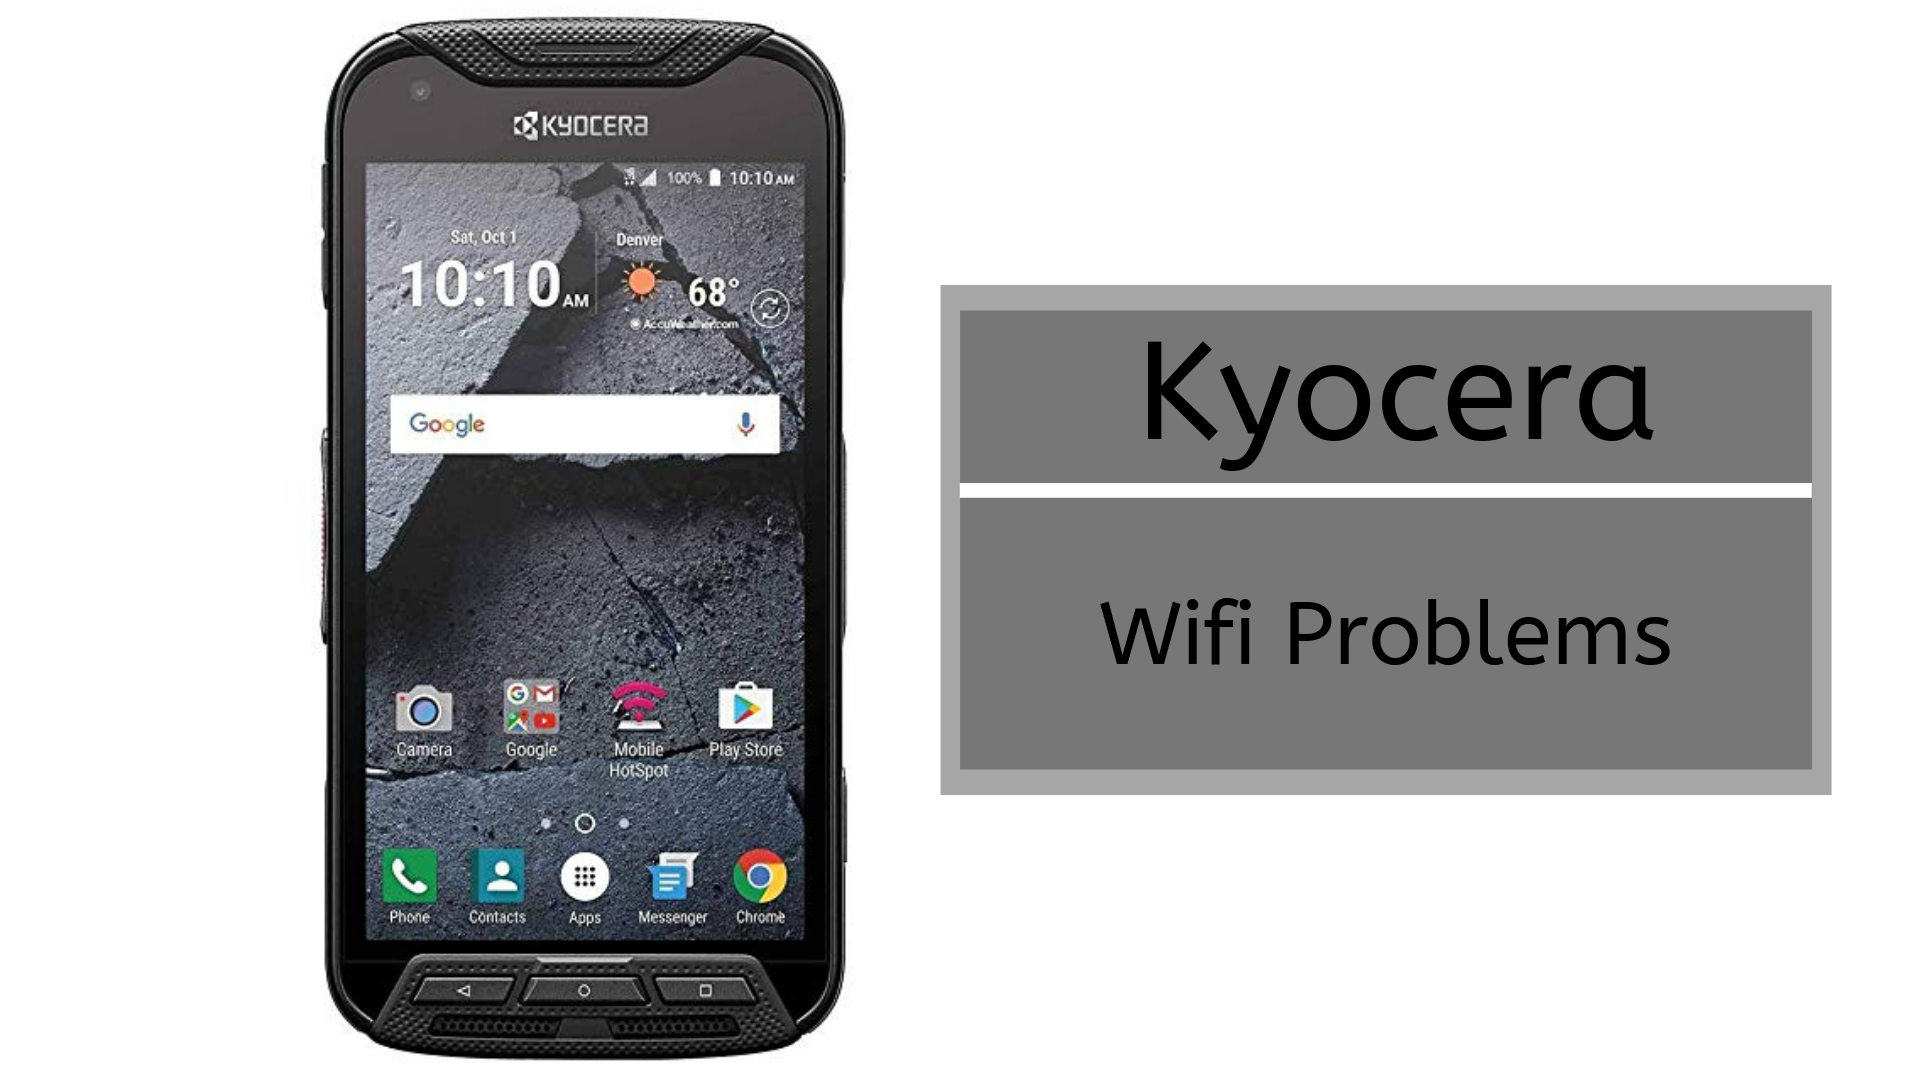 Quick Guide To Fix Kyocera Wifi Problems [Troubleshoot]